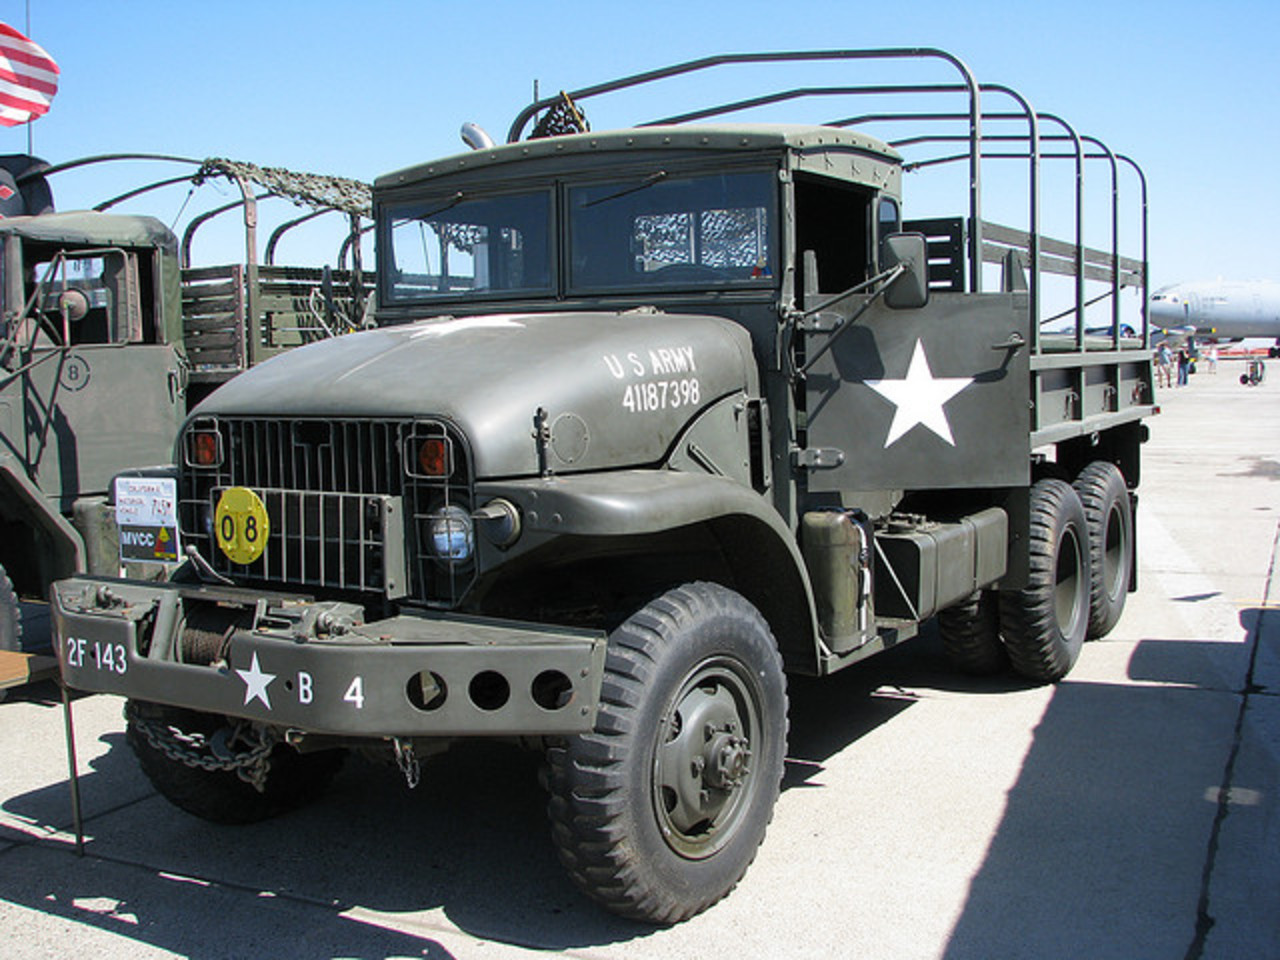 1953 GMC XM211 Truck '41187398' 1 | Flickr - Photo Sharing!